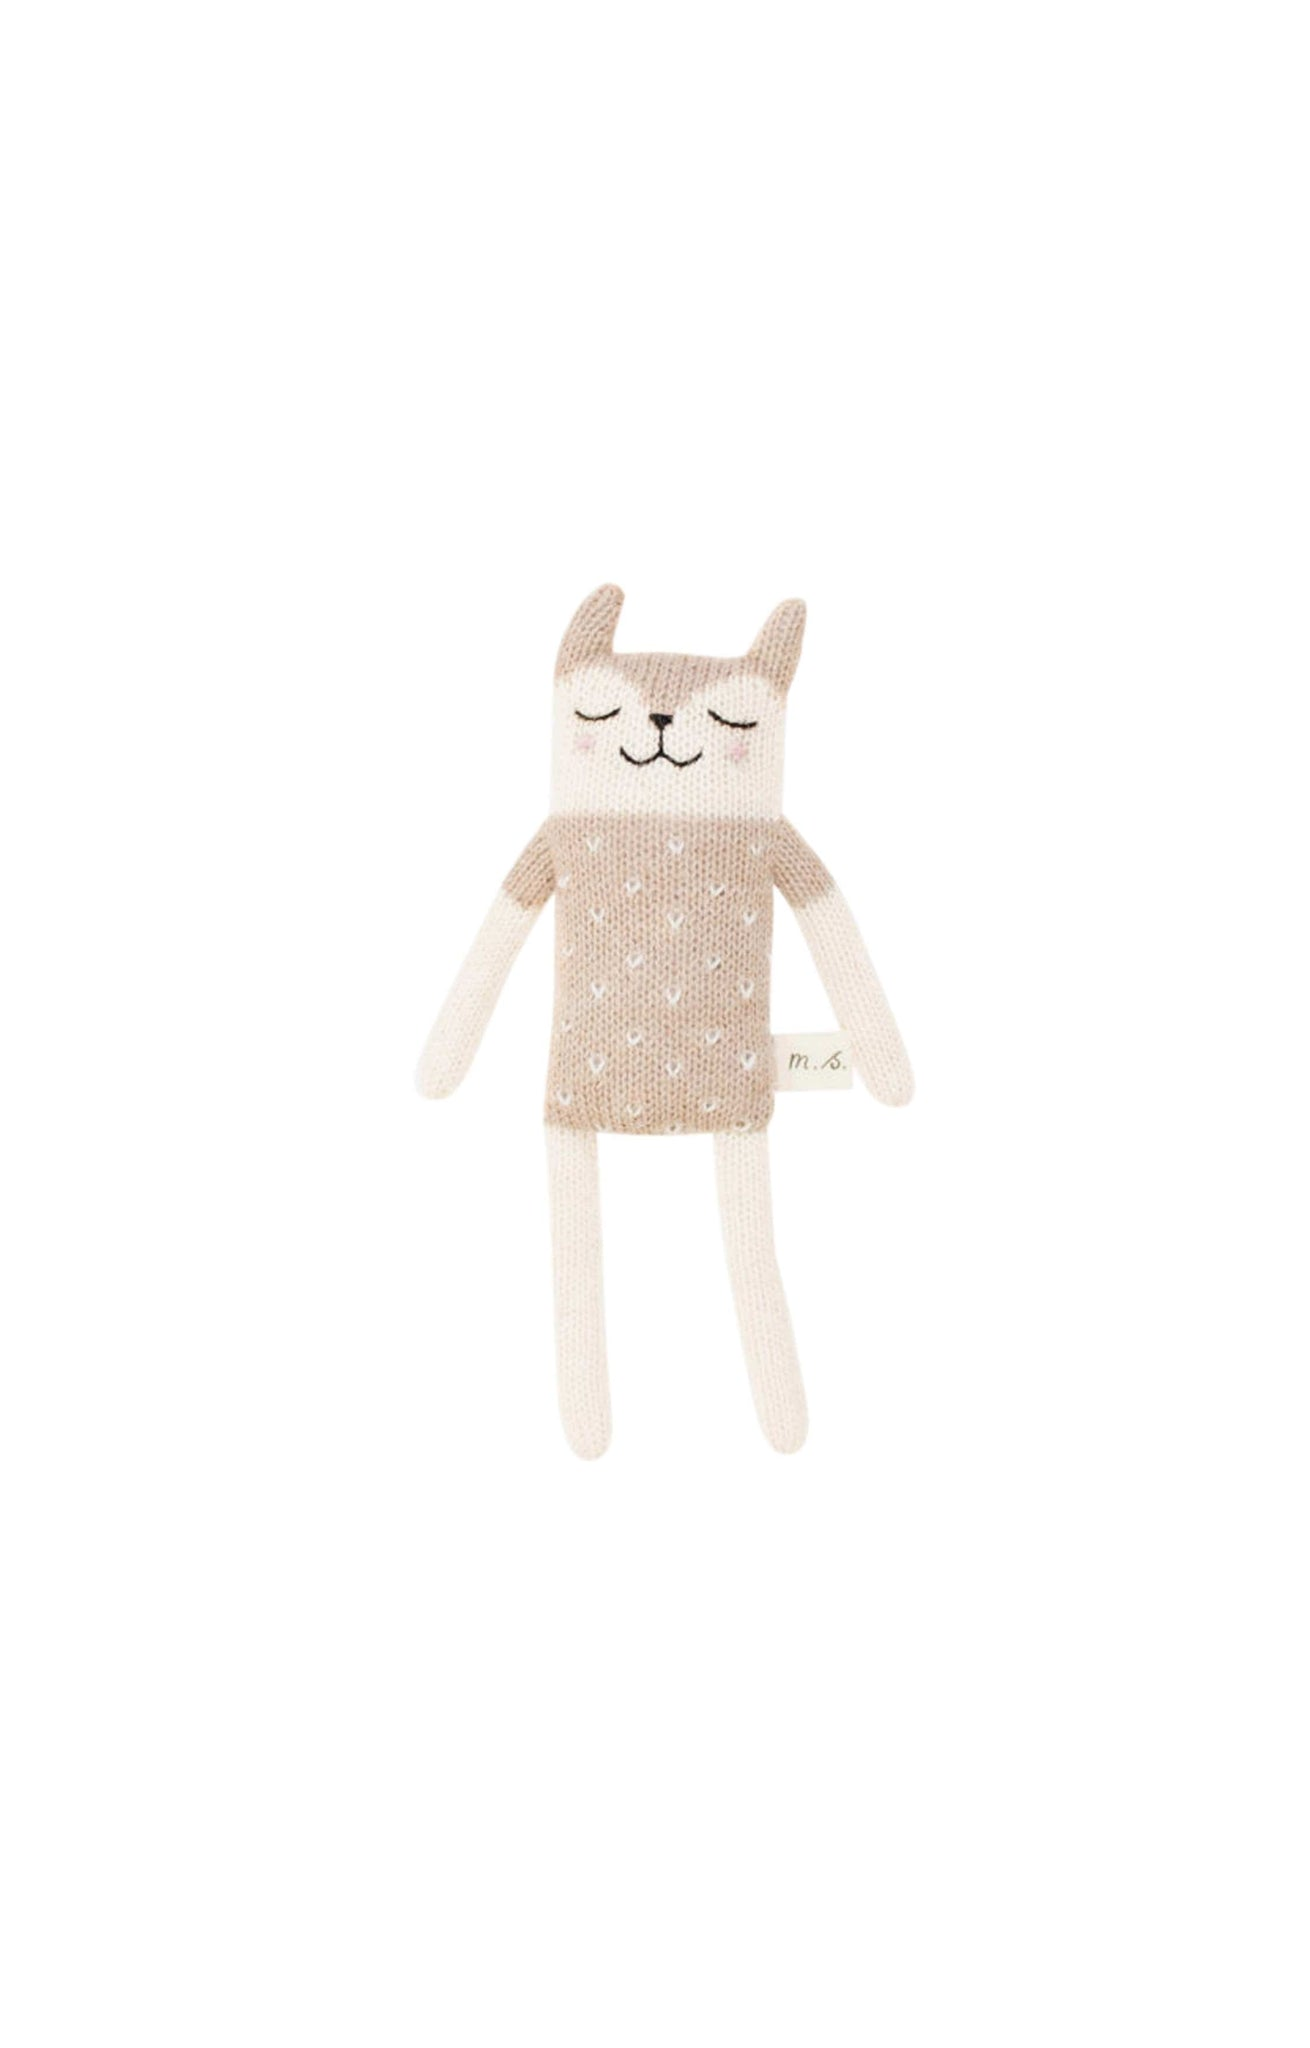 Main Sauvage fawn knit toy Sand - Hello Little Birdie